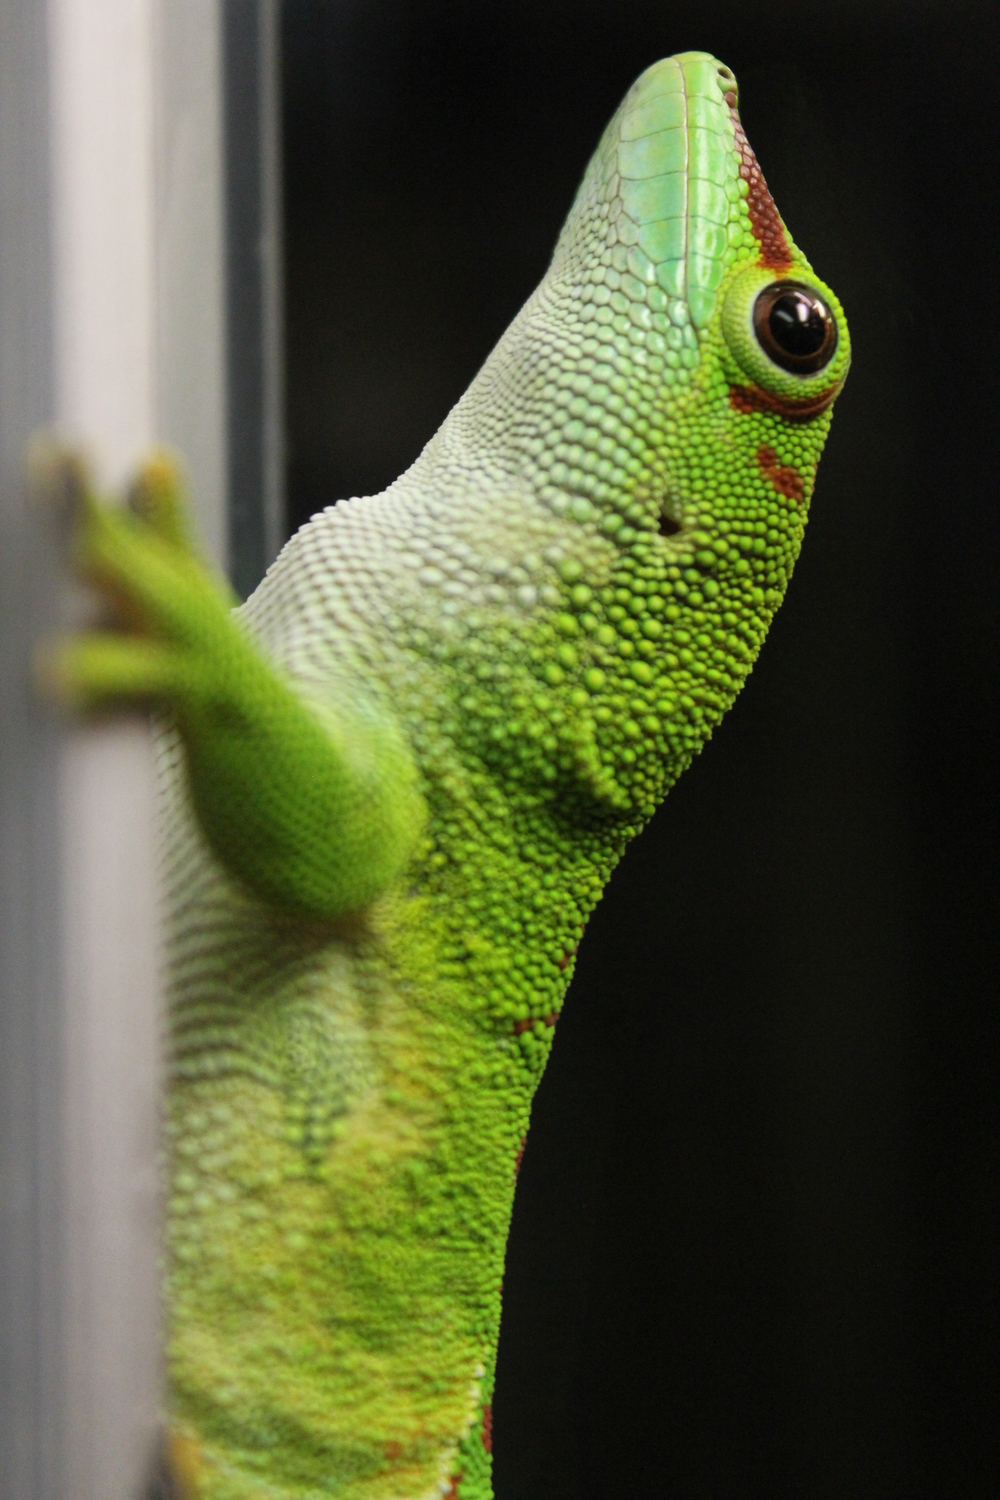 LPZ Florida Wildlife Center Key West Deck Giant Day Gecko 002.JPG